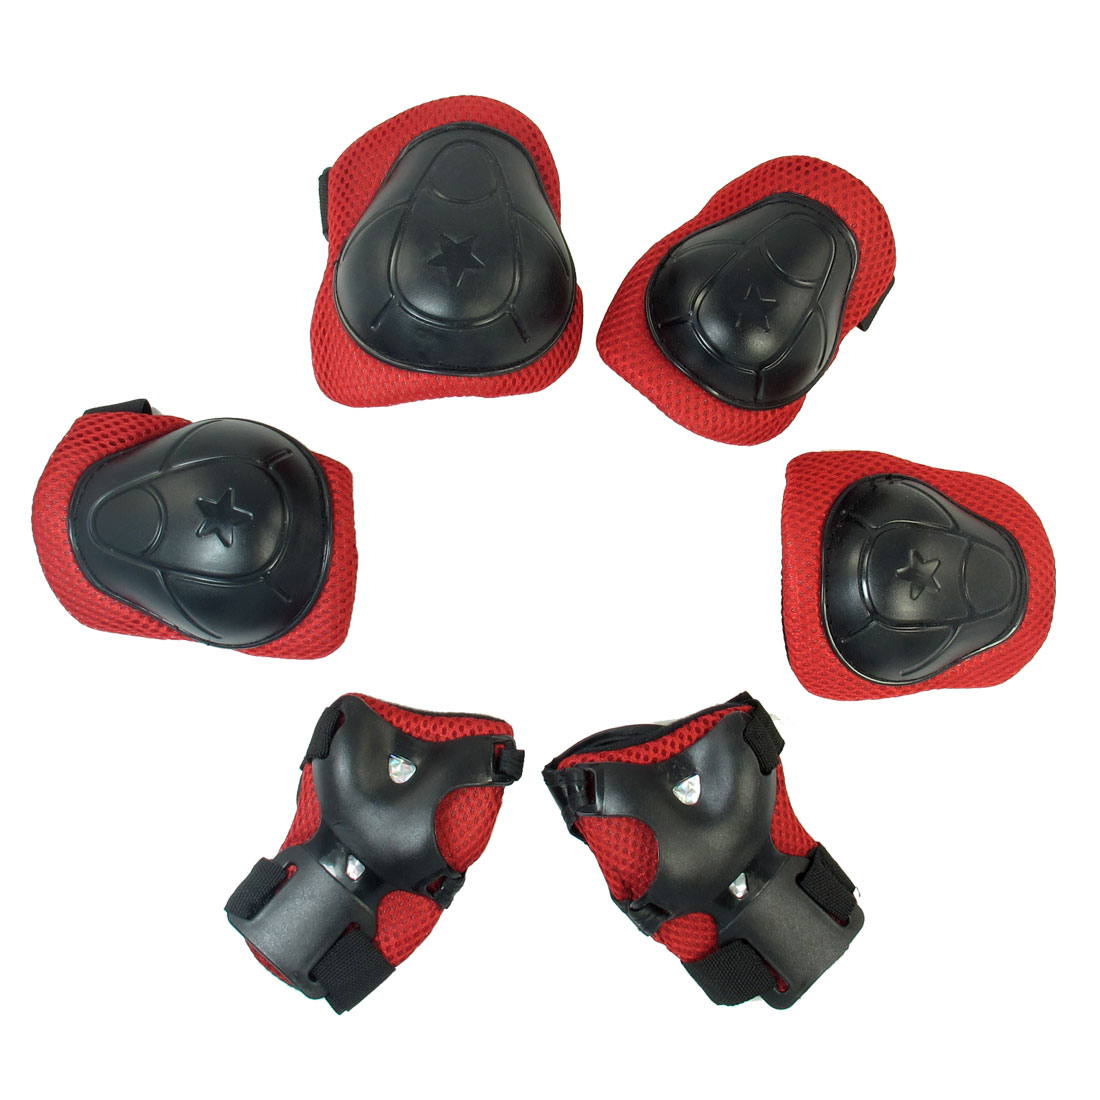 Red Black Elbow Knee Palm Spong Plastic Sports Supporter 3 Pairs